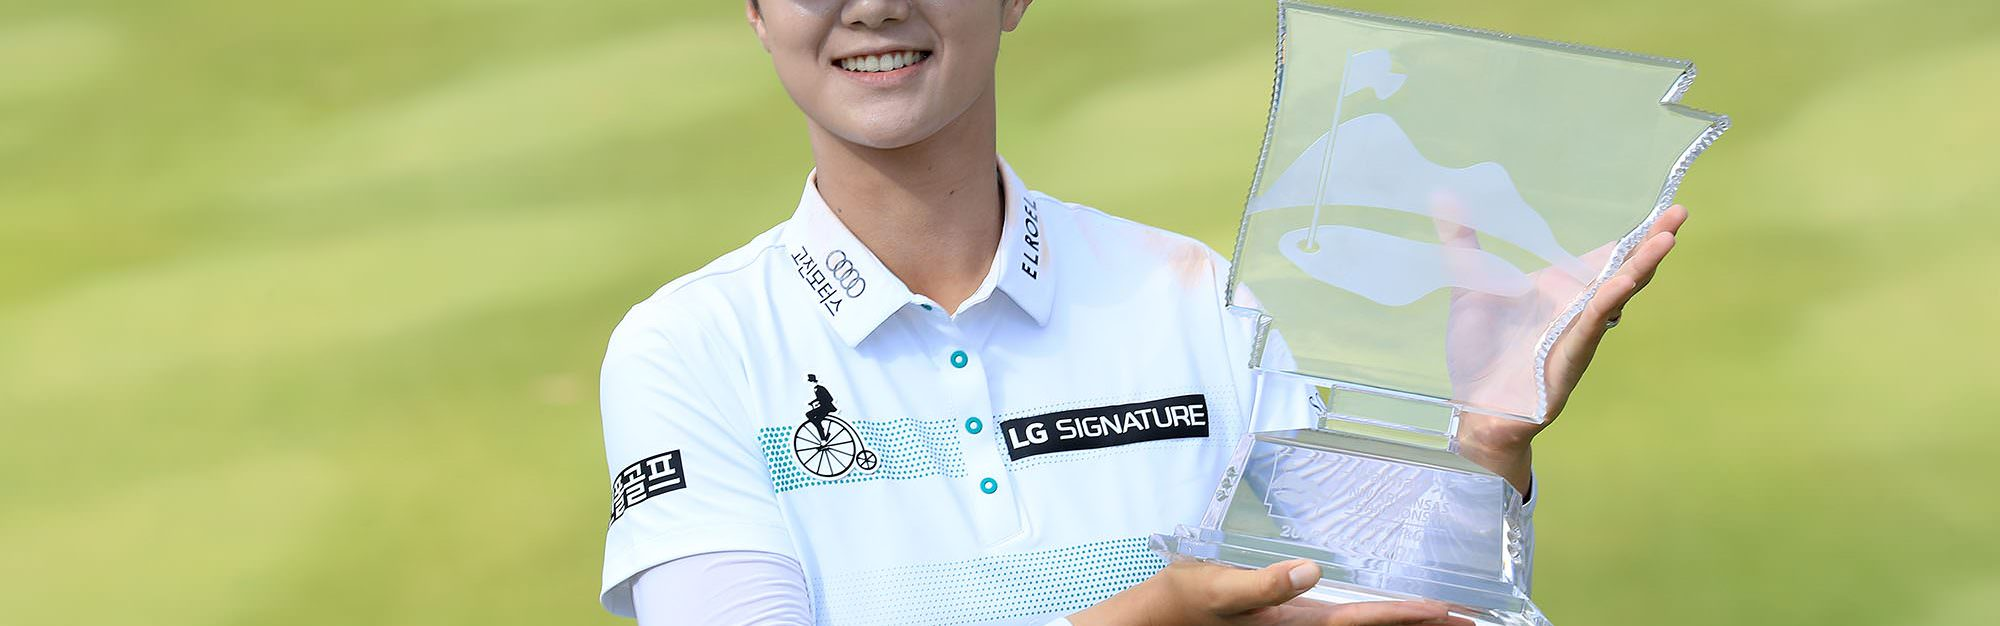 Park rises back to the top after 7th LPGA victory